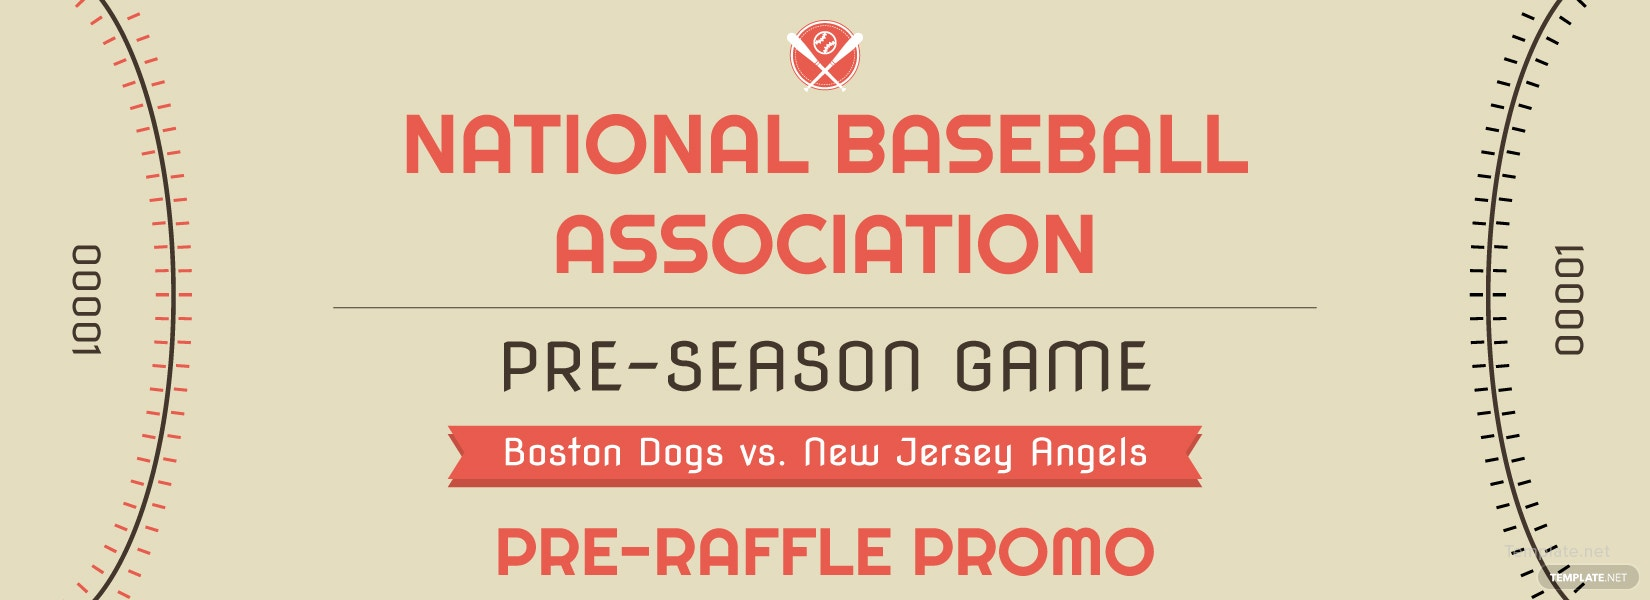 free baseball raffle ticket template in adobe photoshop microsoft word microsoft publisher. Black Bedroom Furniture Sets. Home Design Ideas